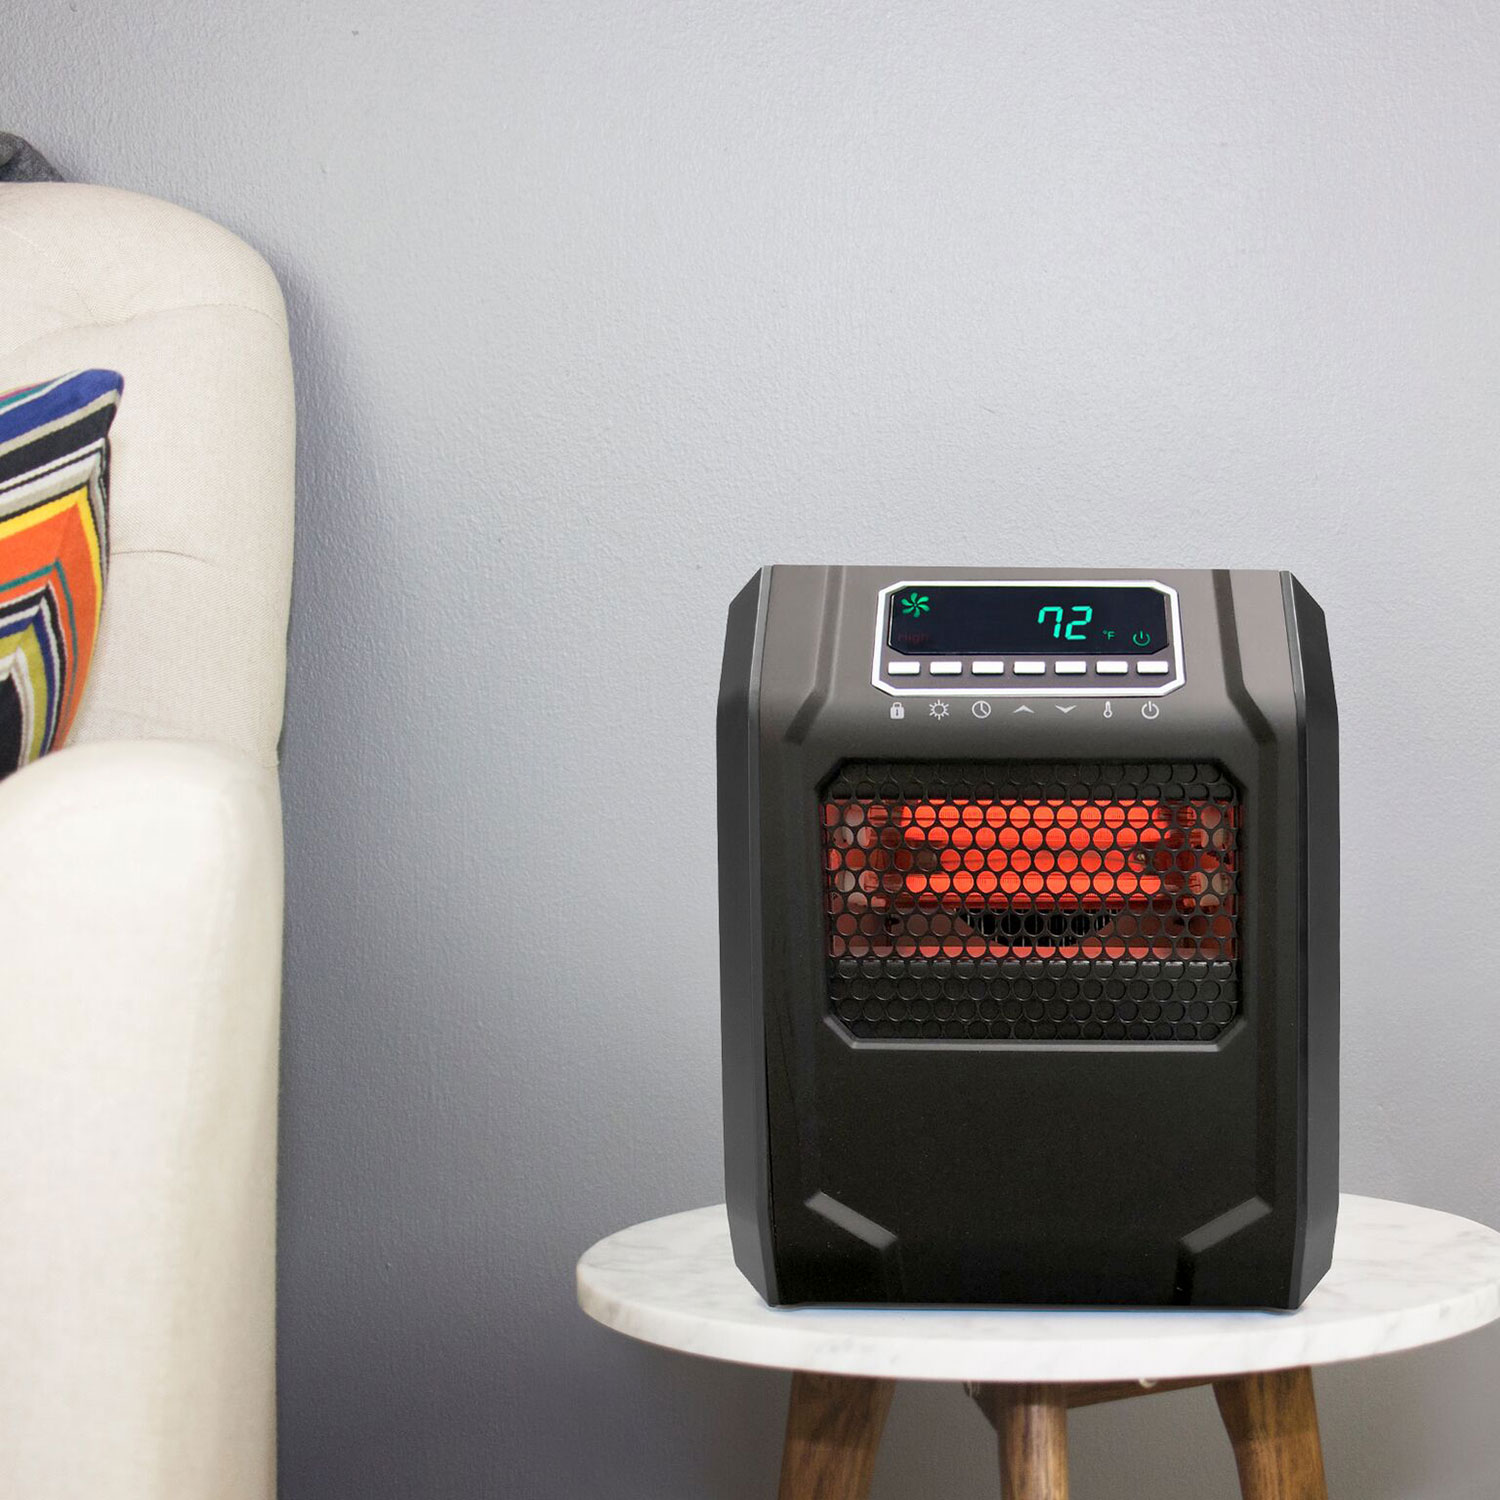 Space Heaters For Living Room: Lifesmart 4-Element Quartz Infrared Portable Electric